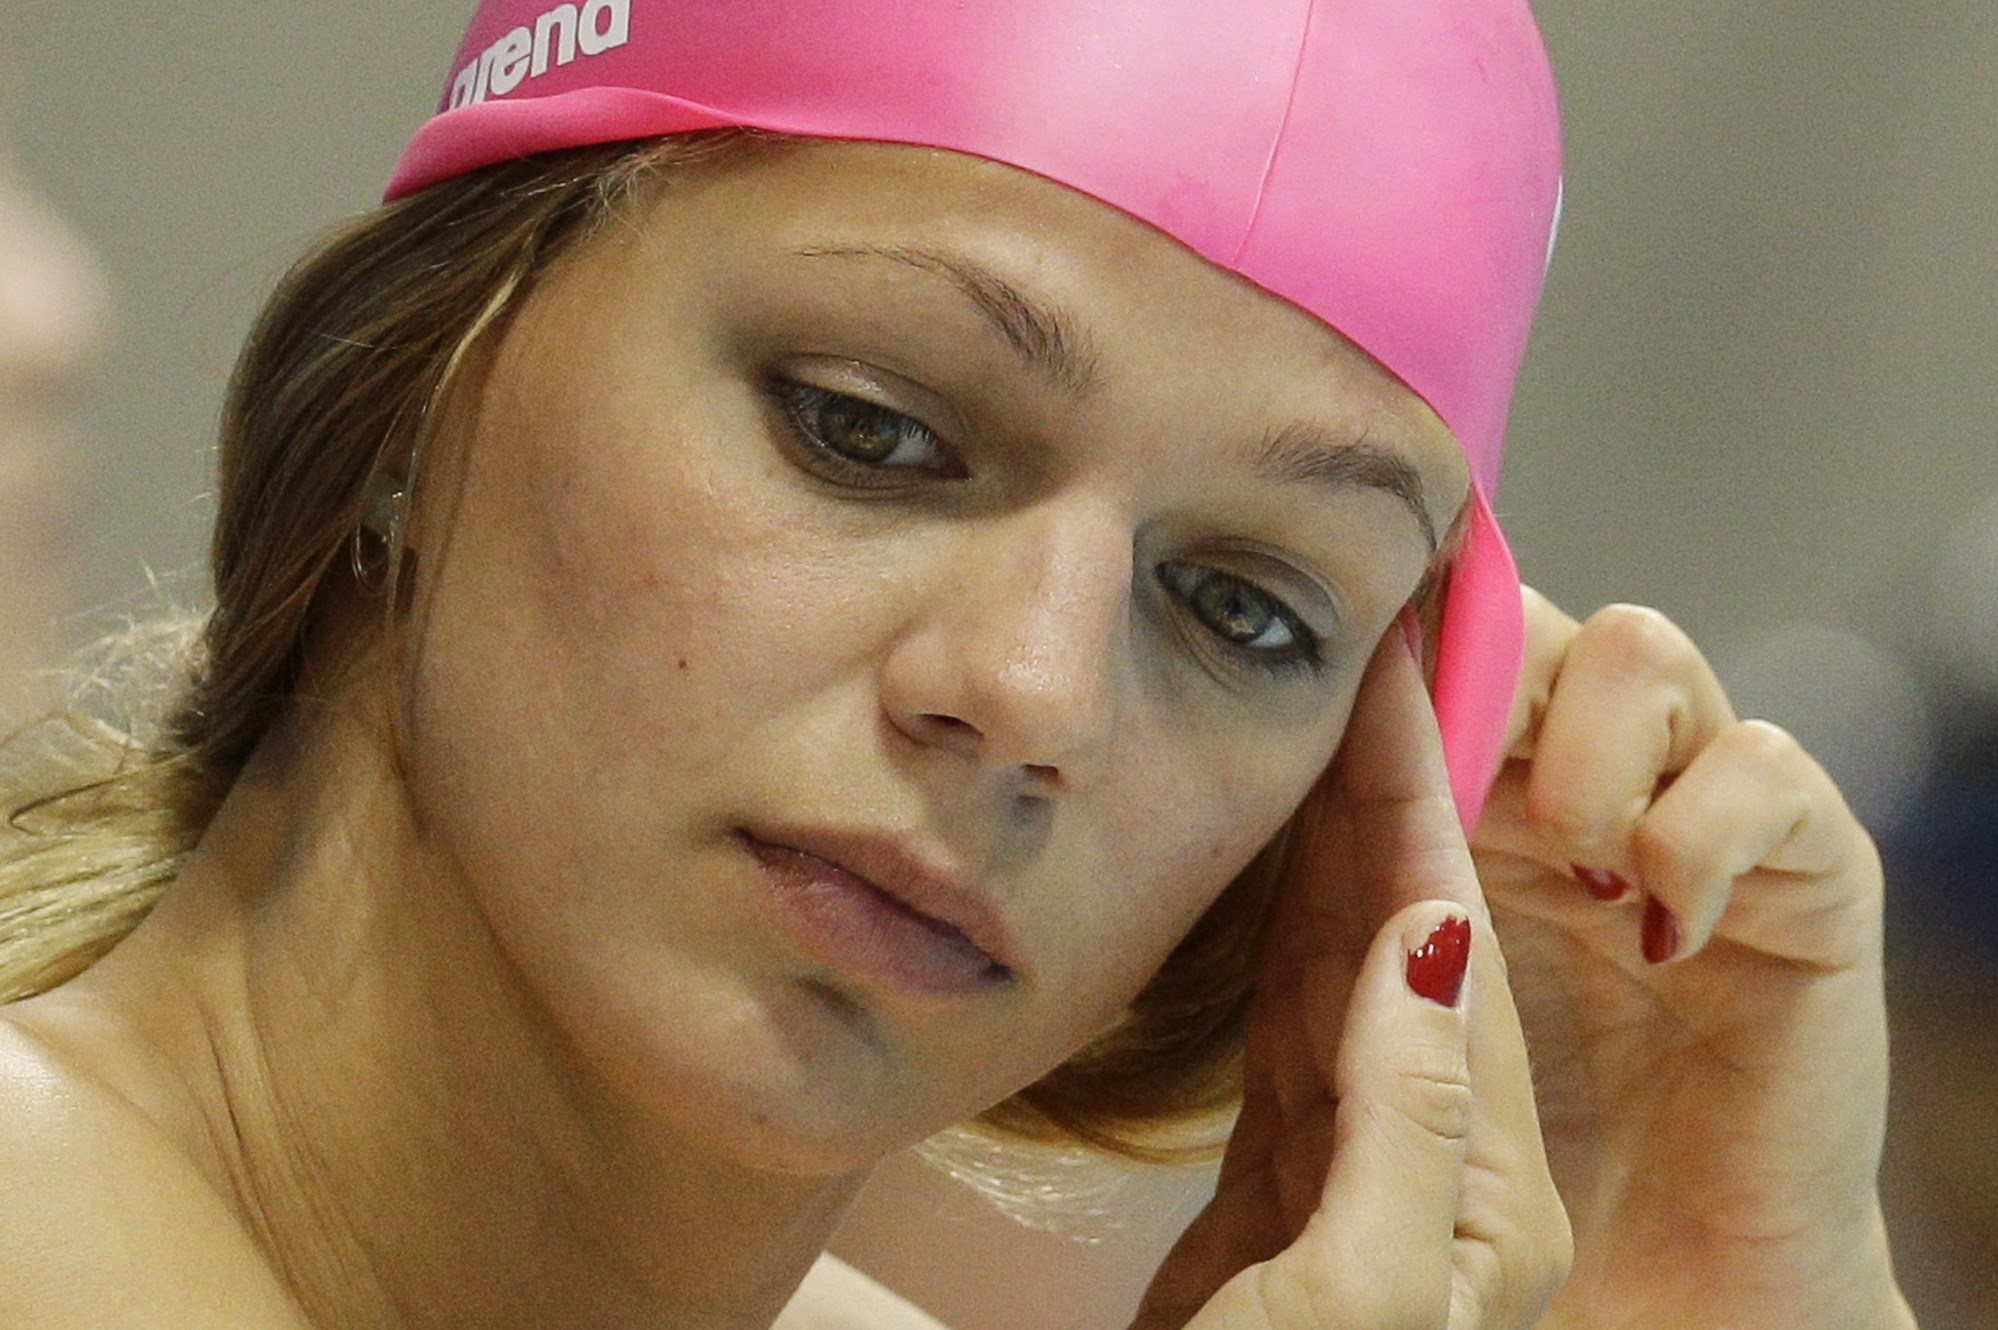 FILE - In this July 27, 2012, file photo, Russia's Yulia Efimova prepares for a practice session at the Aquatics Centre in the Olympic Park ahead of the 2012 Summer Olympics, in London. Swimming governing body FINA has ruled seven Russian swimmers ineligi